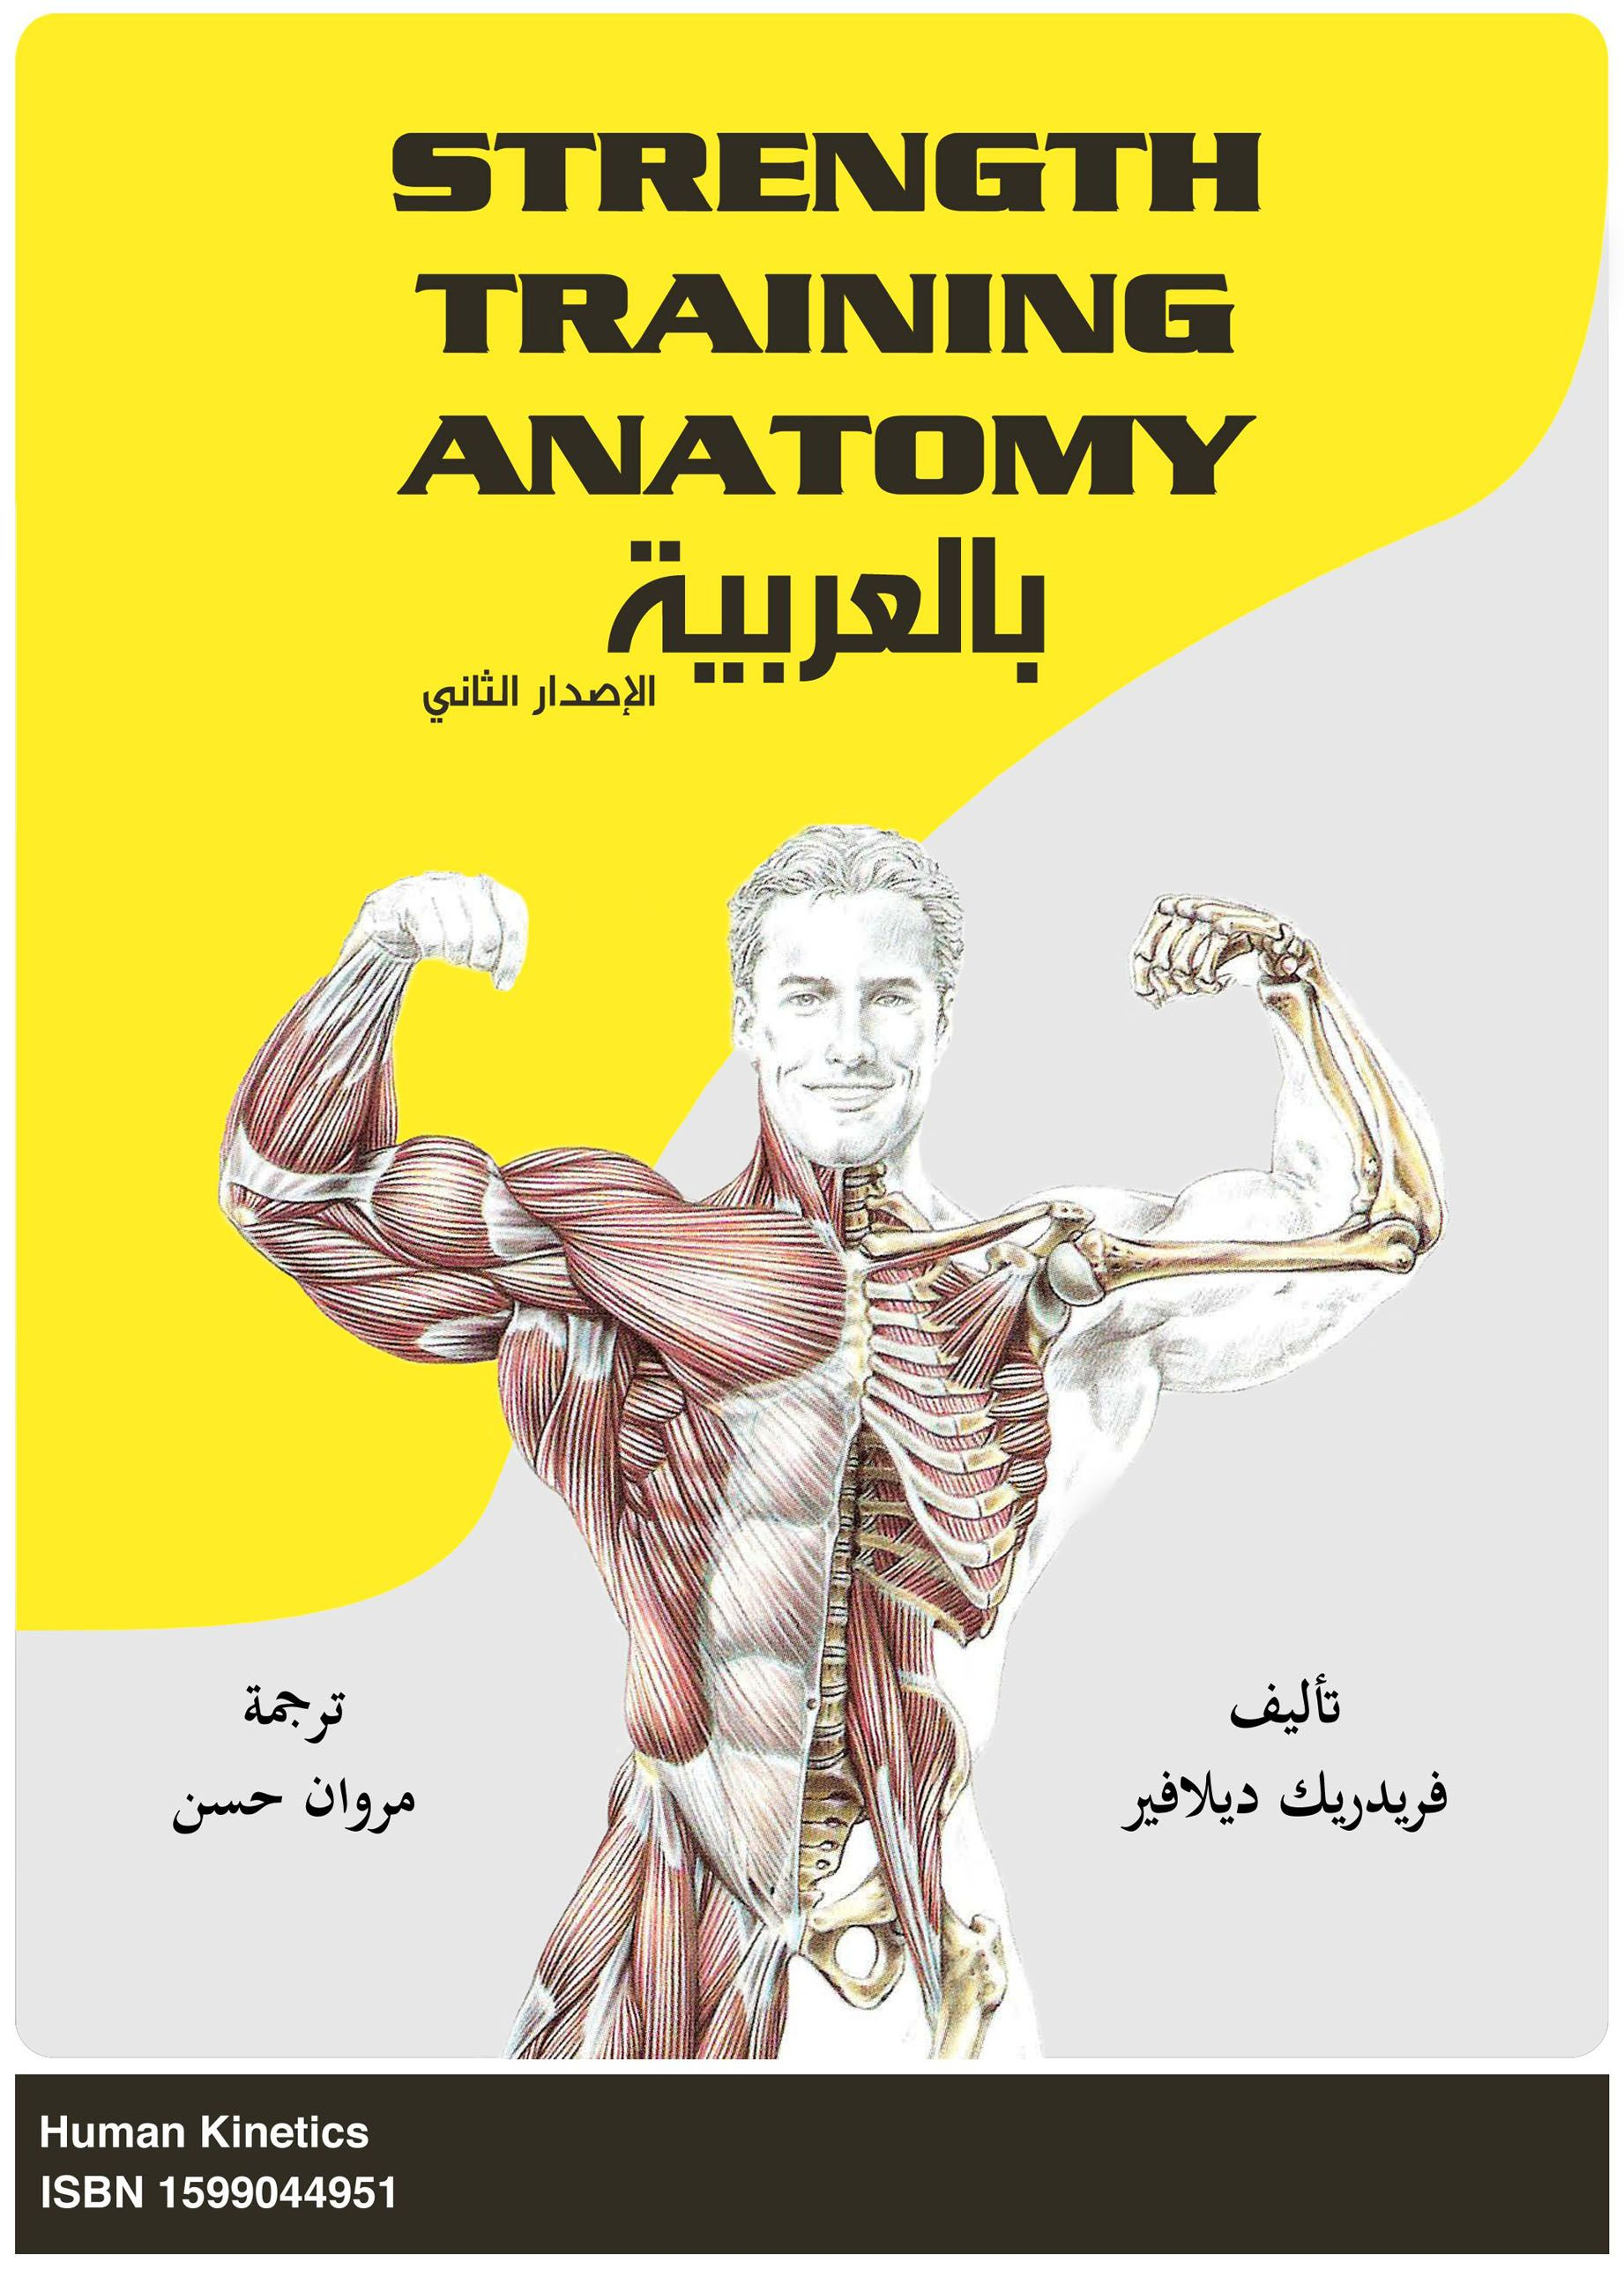 كتاب strength training anatomy بالعربي pdf